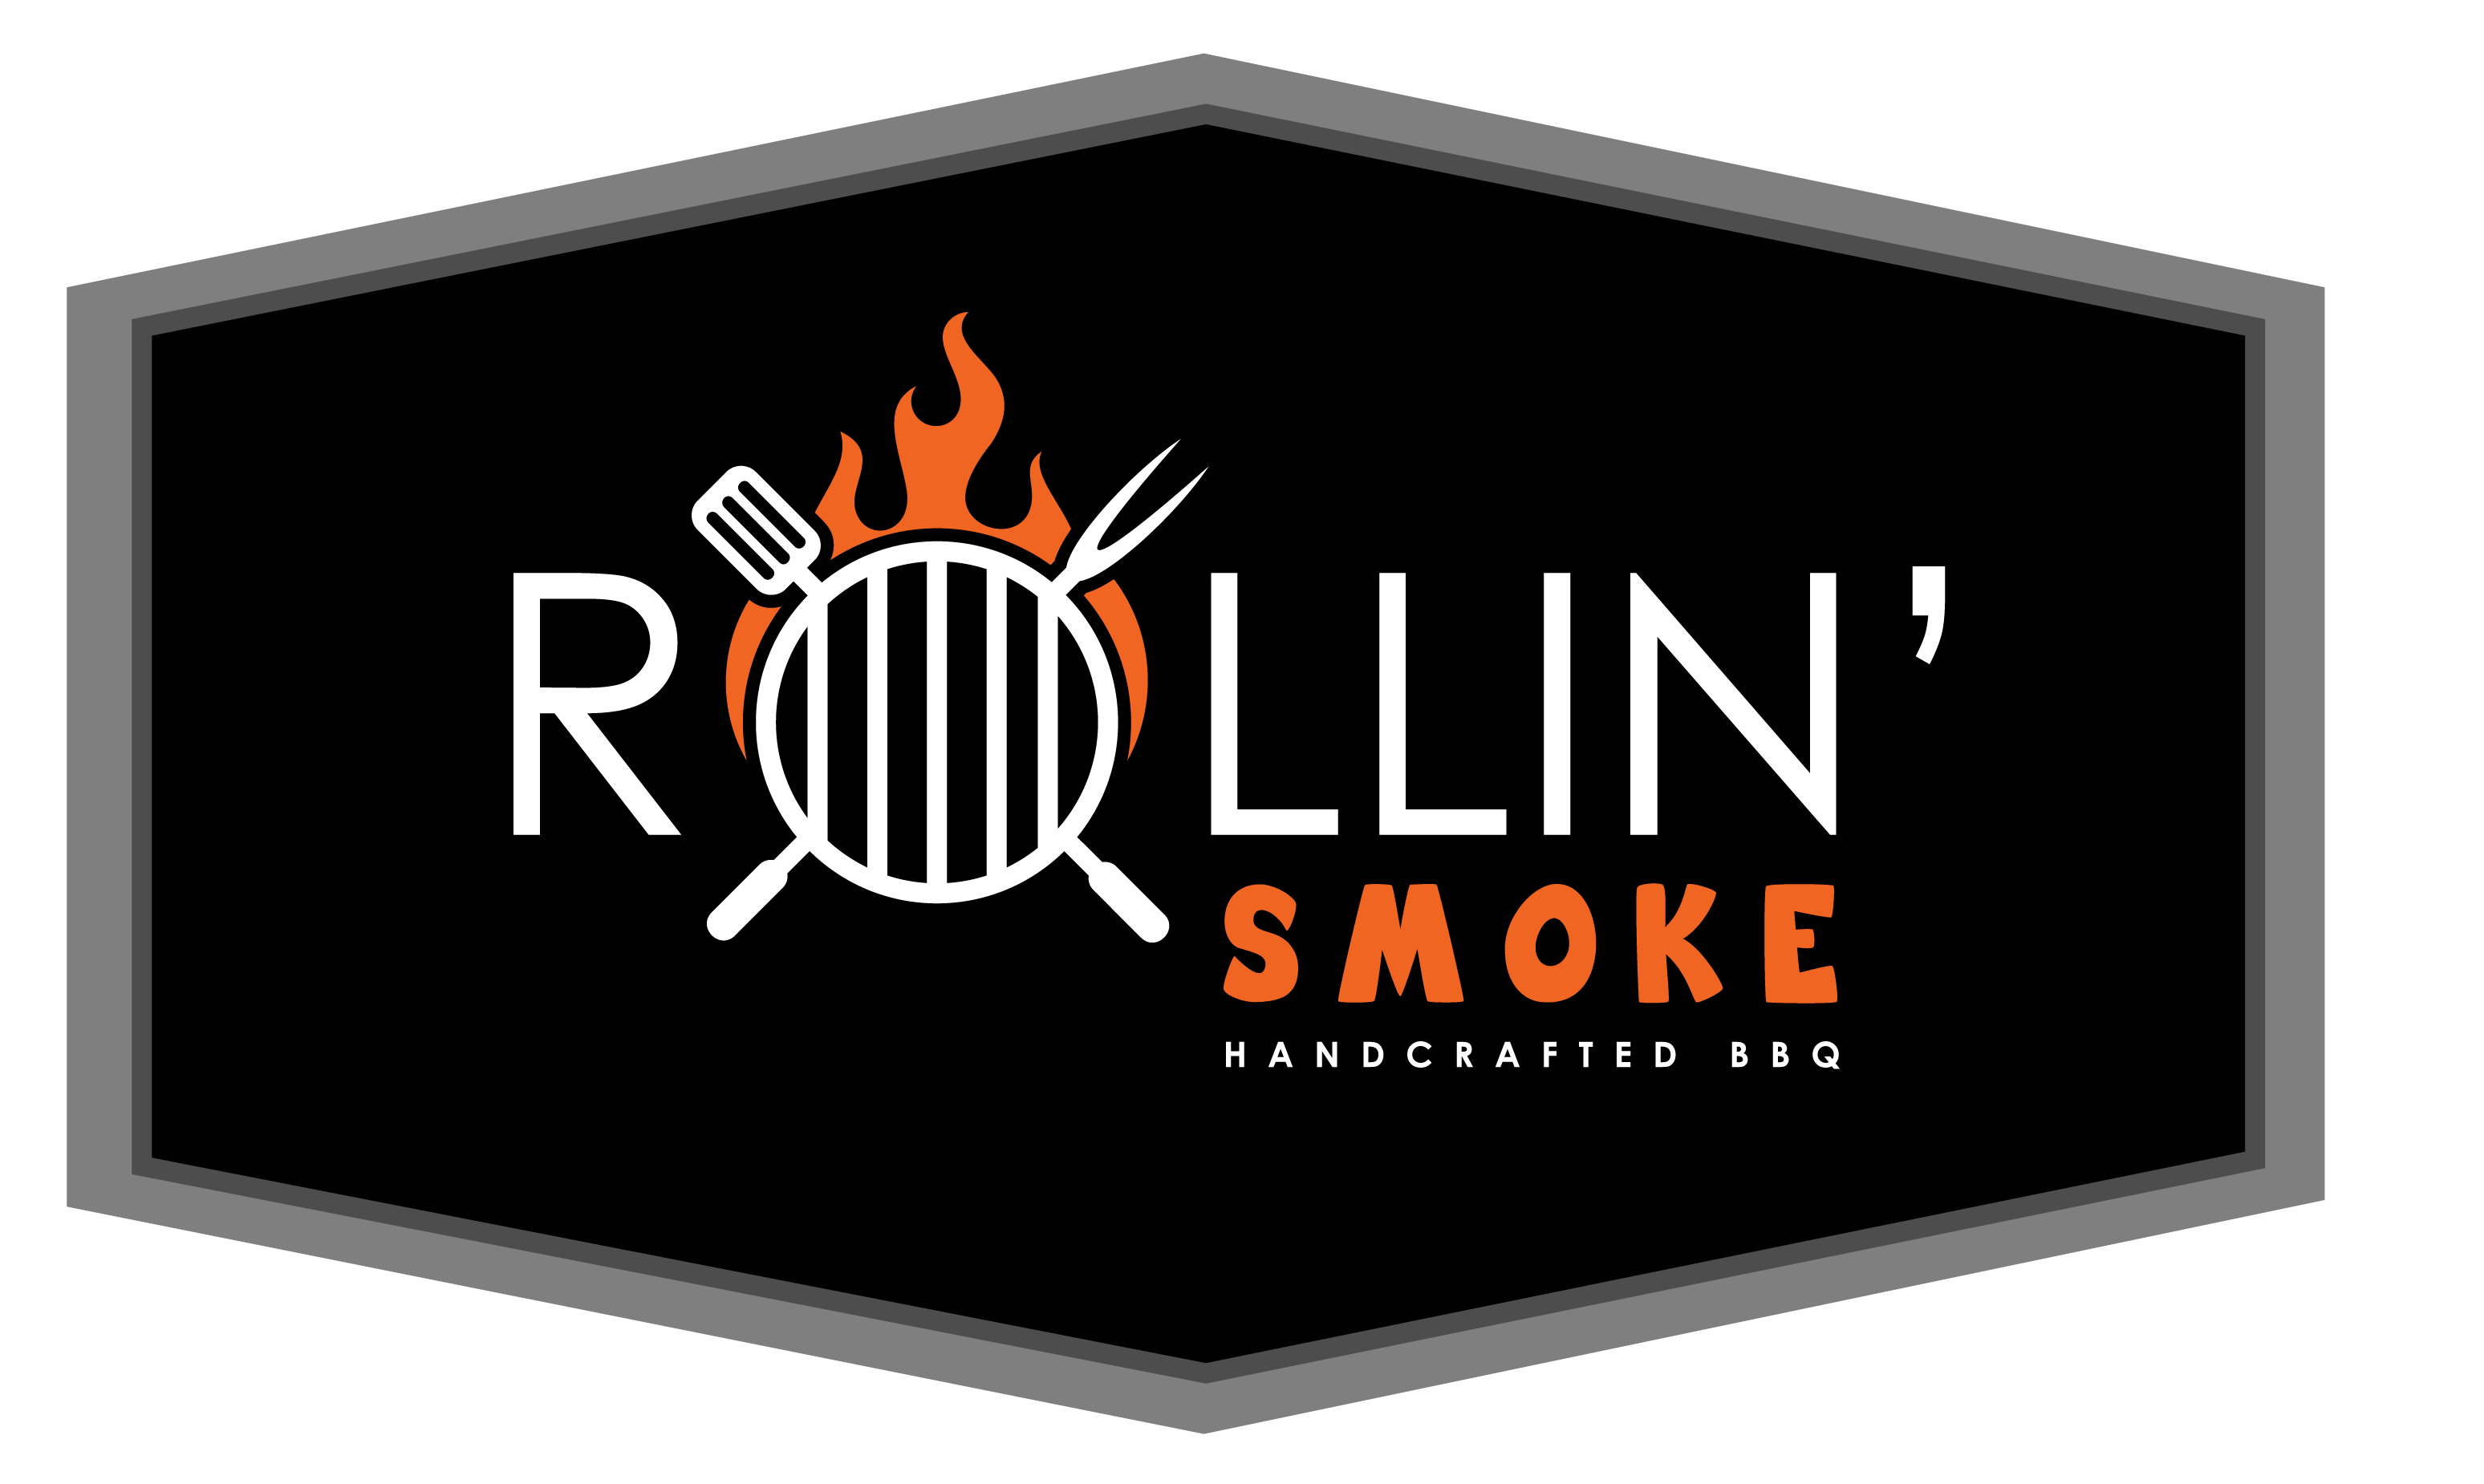 Rollin' Smoke Handcrafted BBQ